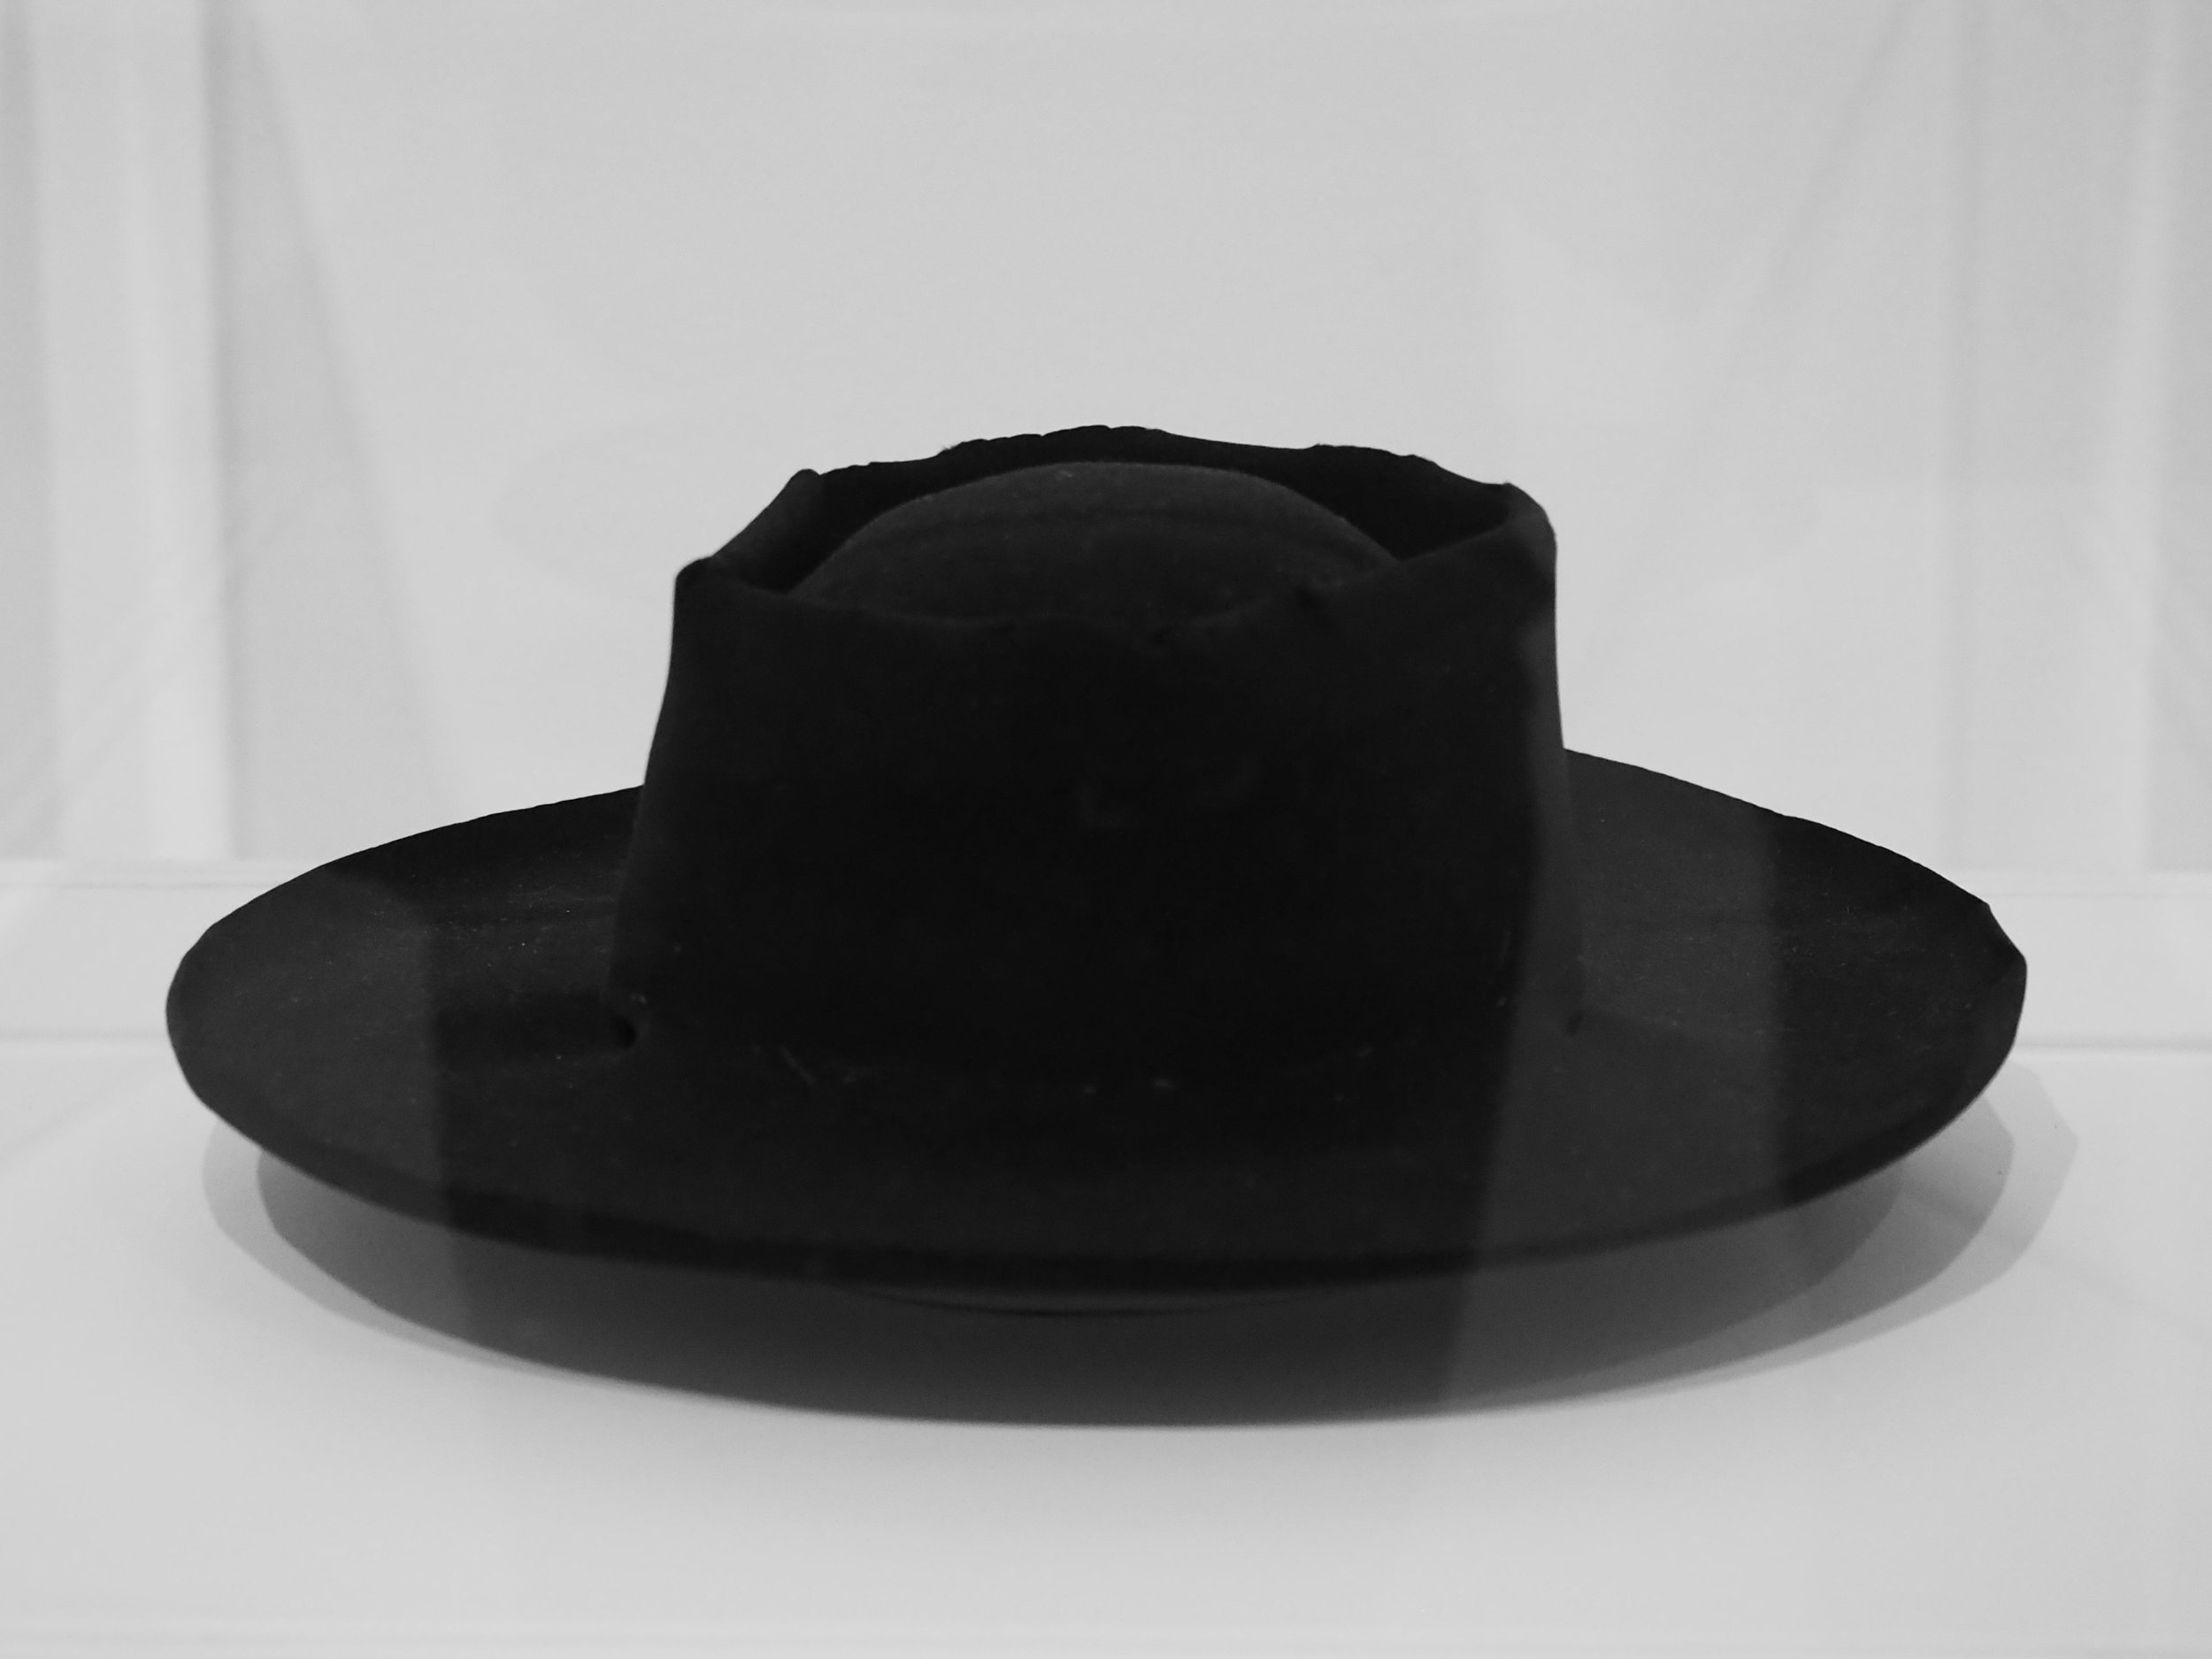 Georgia O'Keefe's Hat